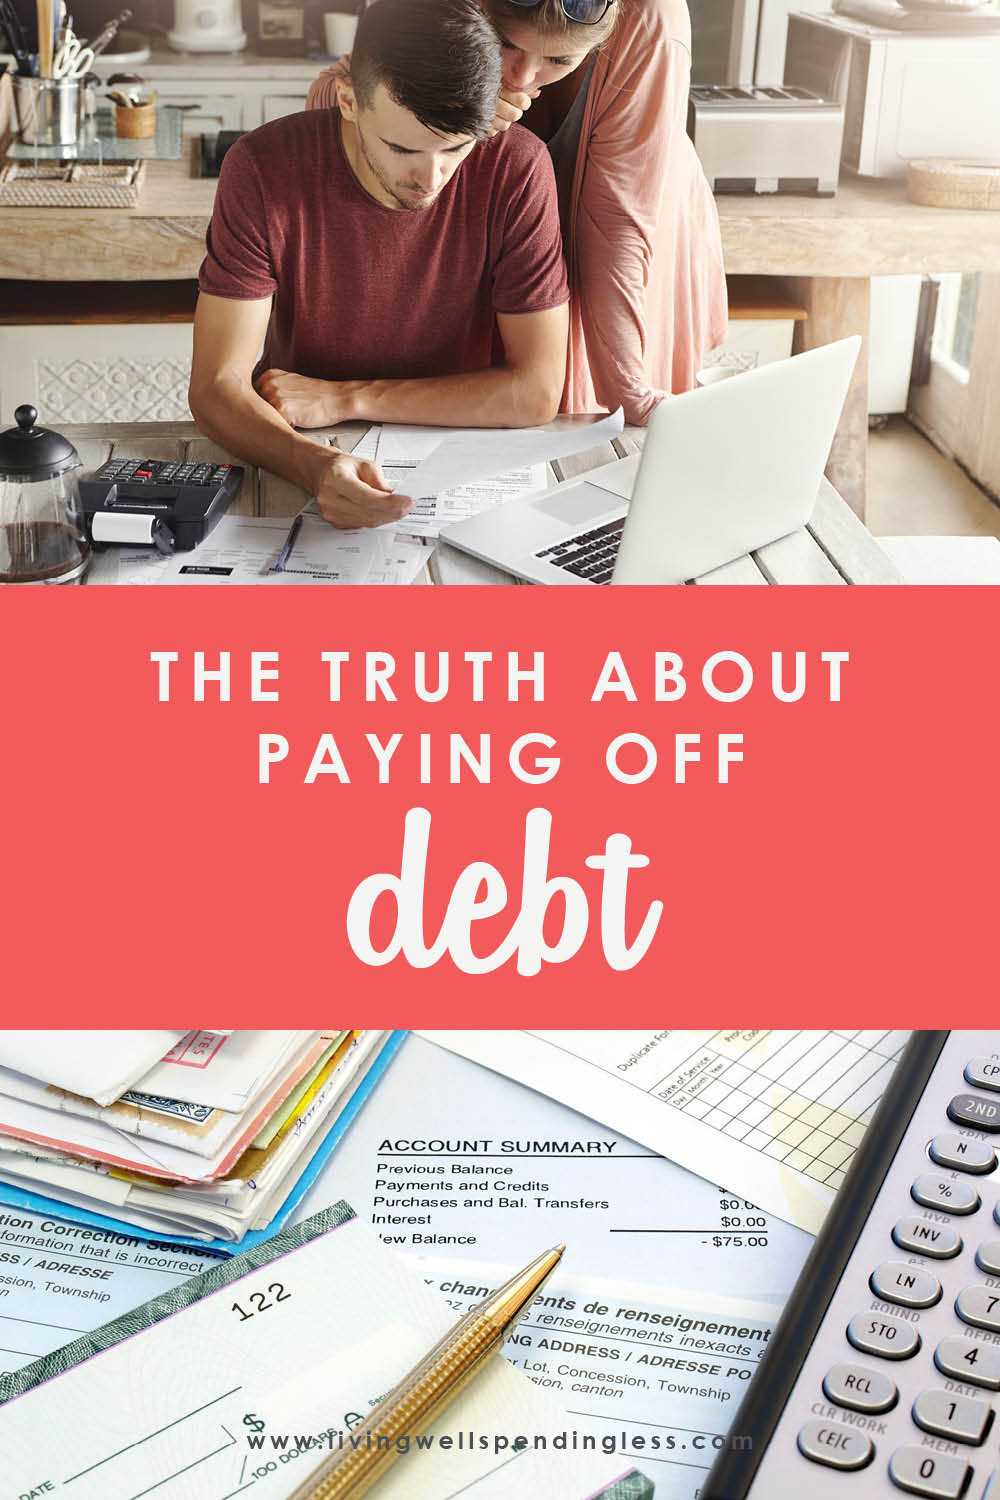 Paying off debt can be hard! If you've been feeling weary, don't miss these helpful insights on learning to navigate the good, the bad and the ugly. #payingoffdebt #payoffdebt #debtfreeliving #debtfree #budgeting #budgettips #moneysavingtips #savingmoney